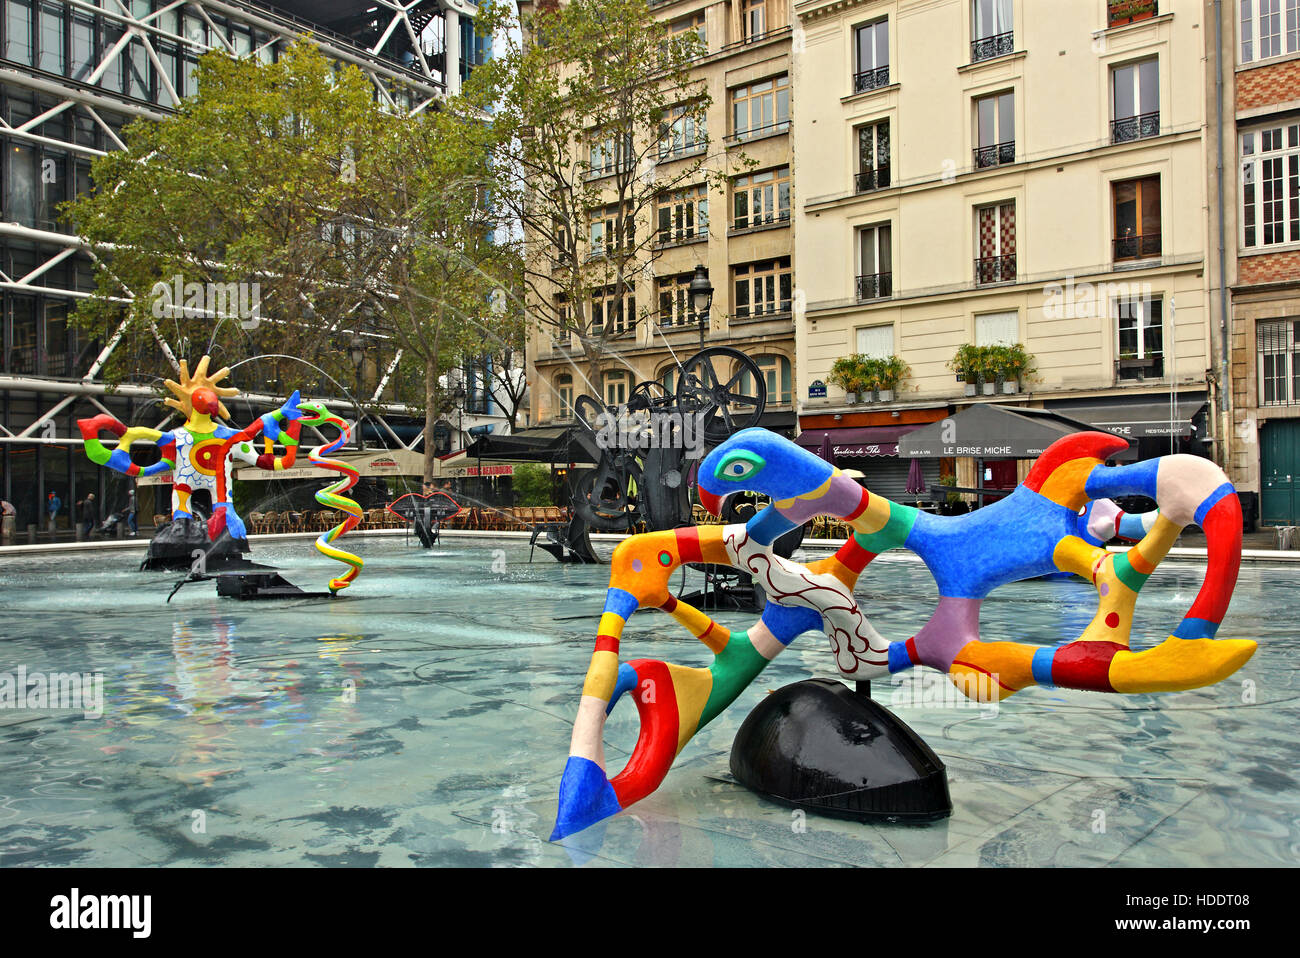 Modern sculpture at the fountain of Place Igor Stravinsky, outside the Centre Pompidou, Paris France. - Stock Image